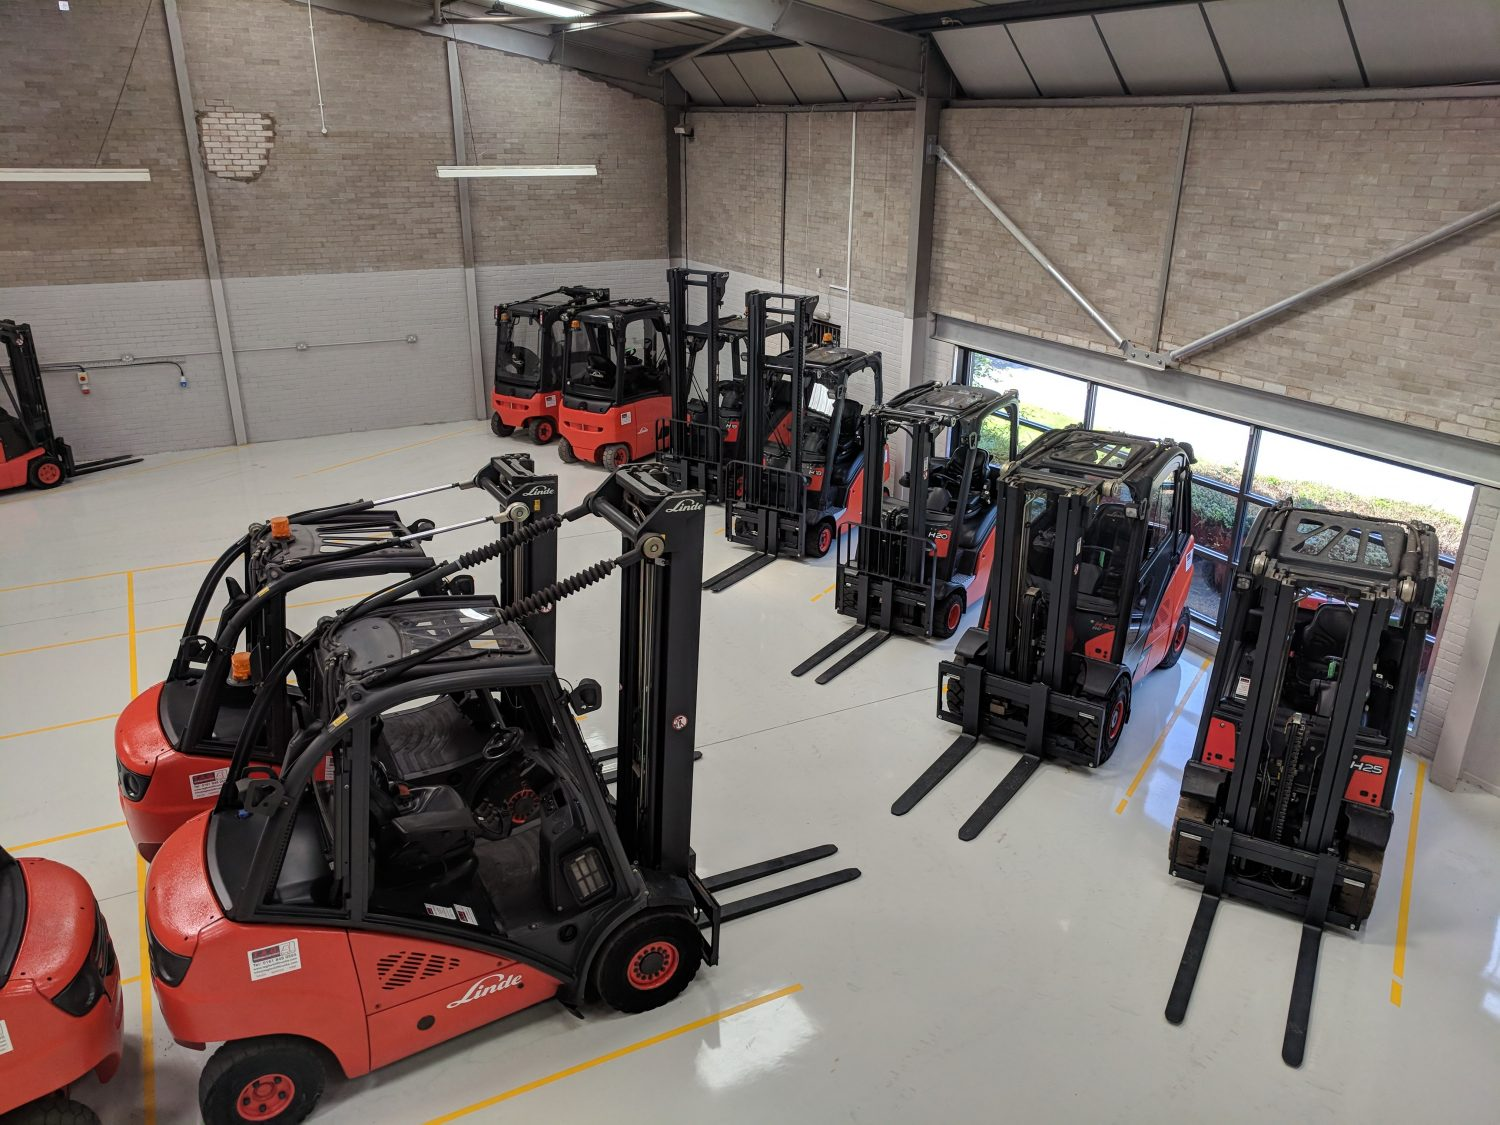 Maintaining Vital Forklift Services While Limiting Spread of Coronavirus (COVID-19)